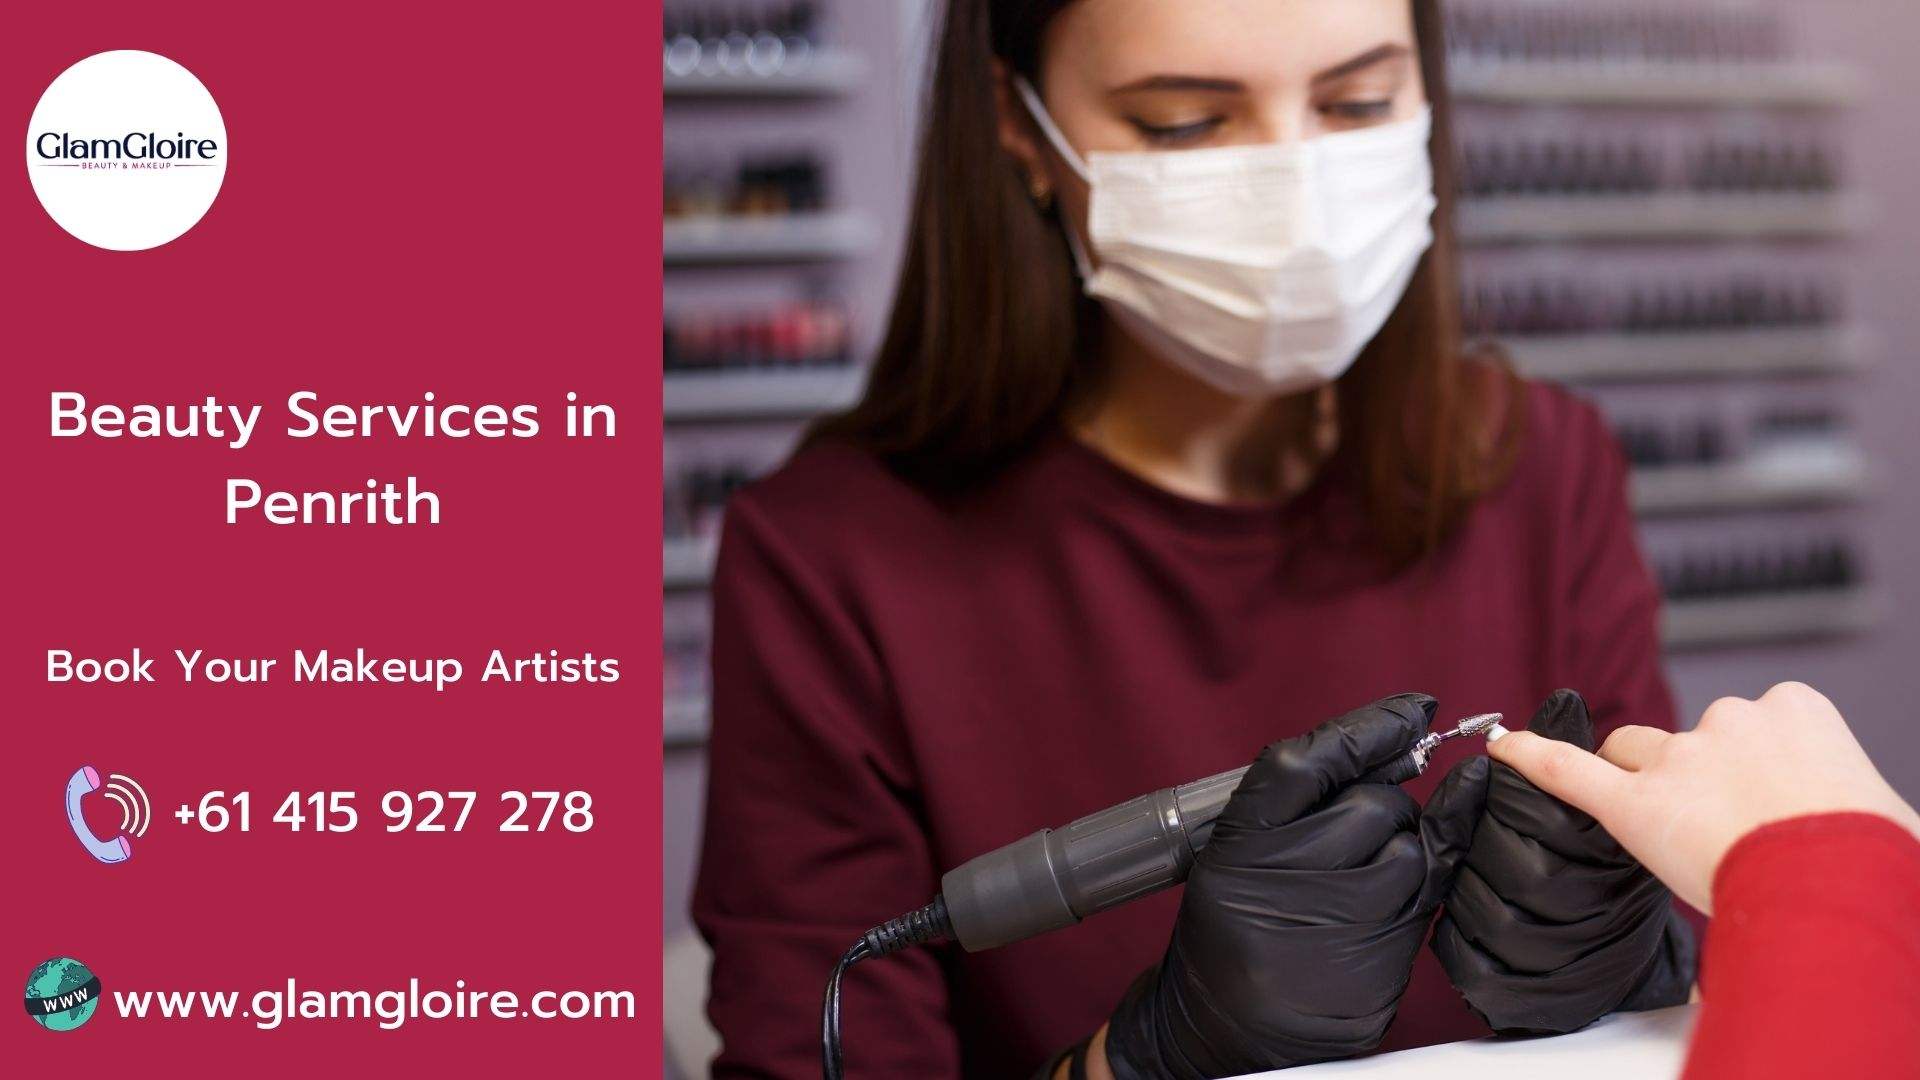 Beauty Services in Penrith GlamGloire